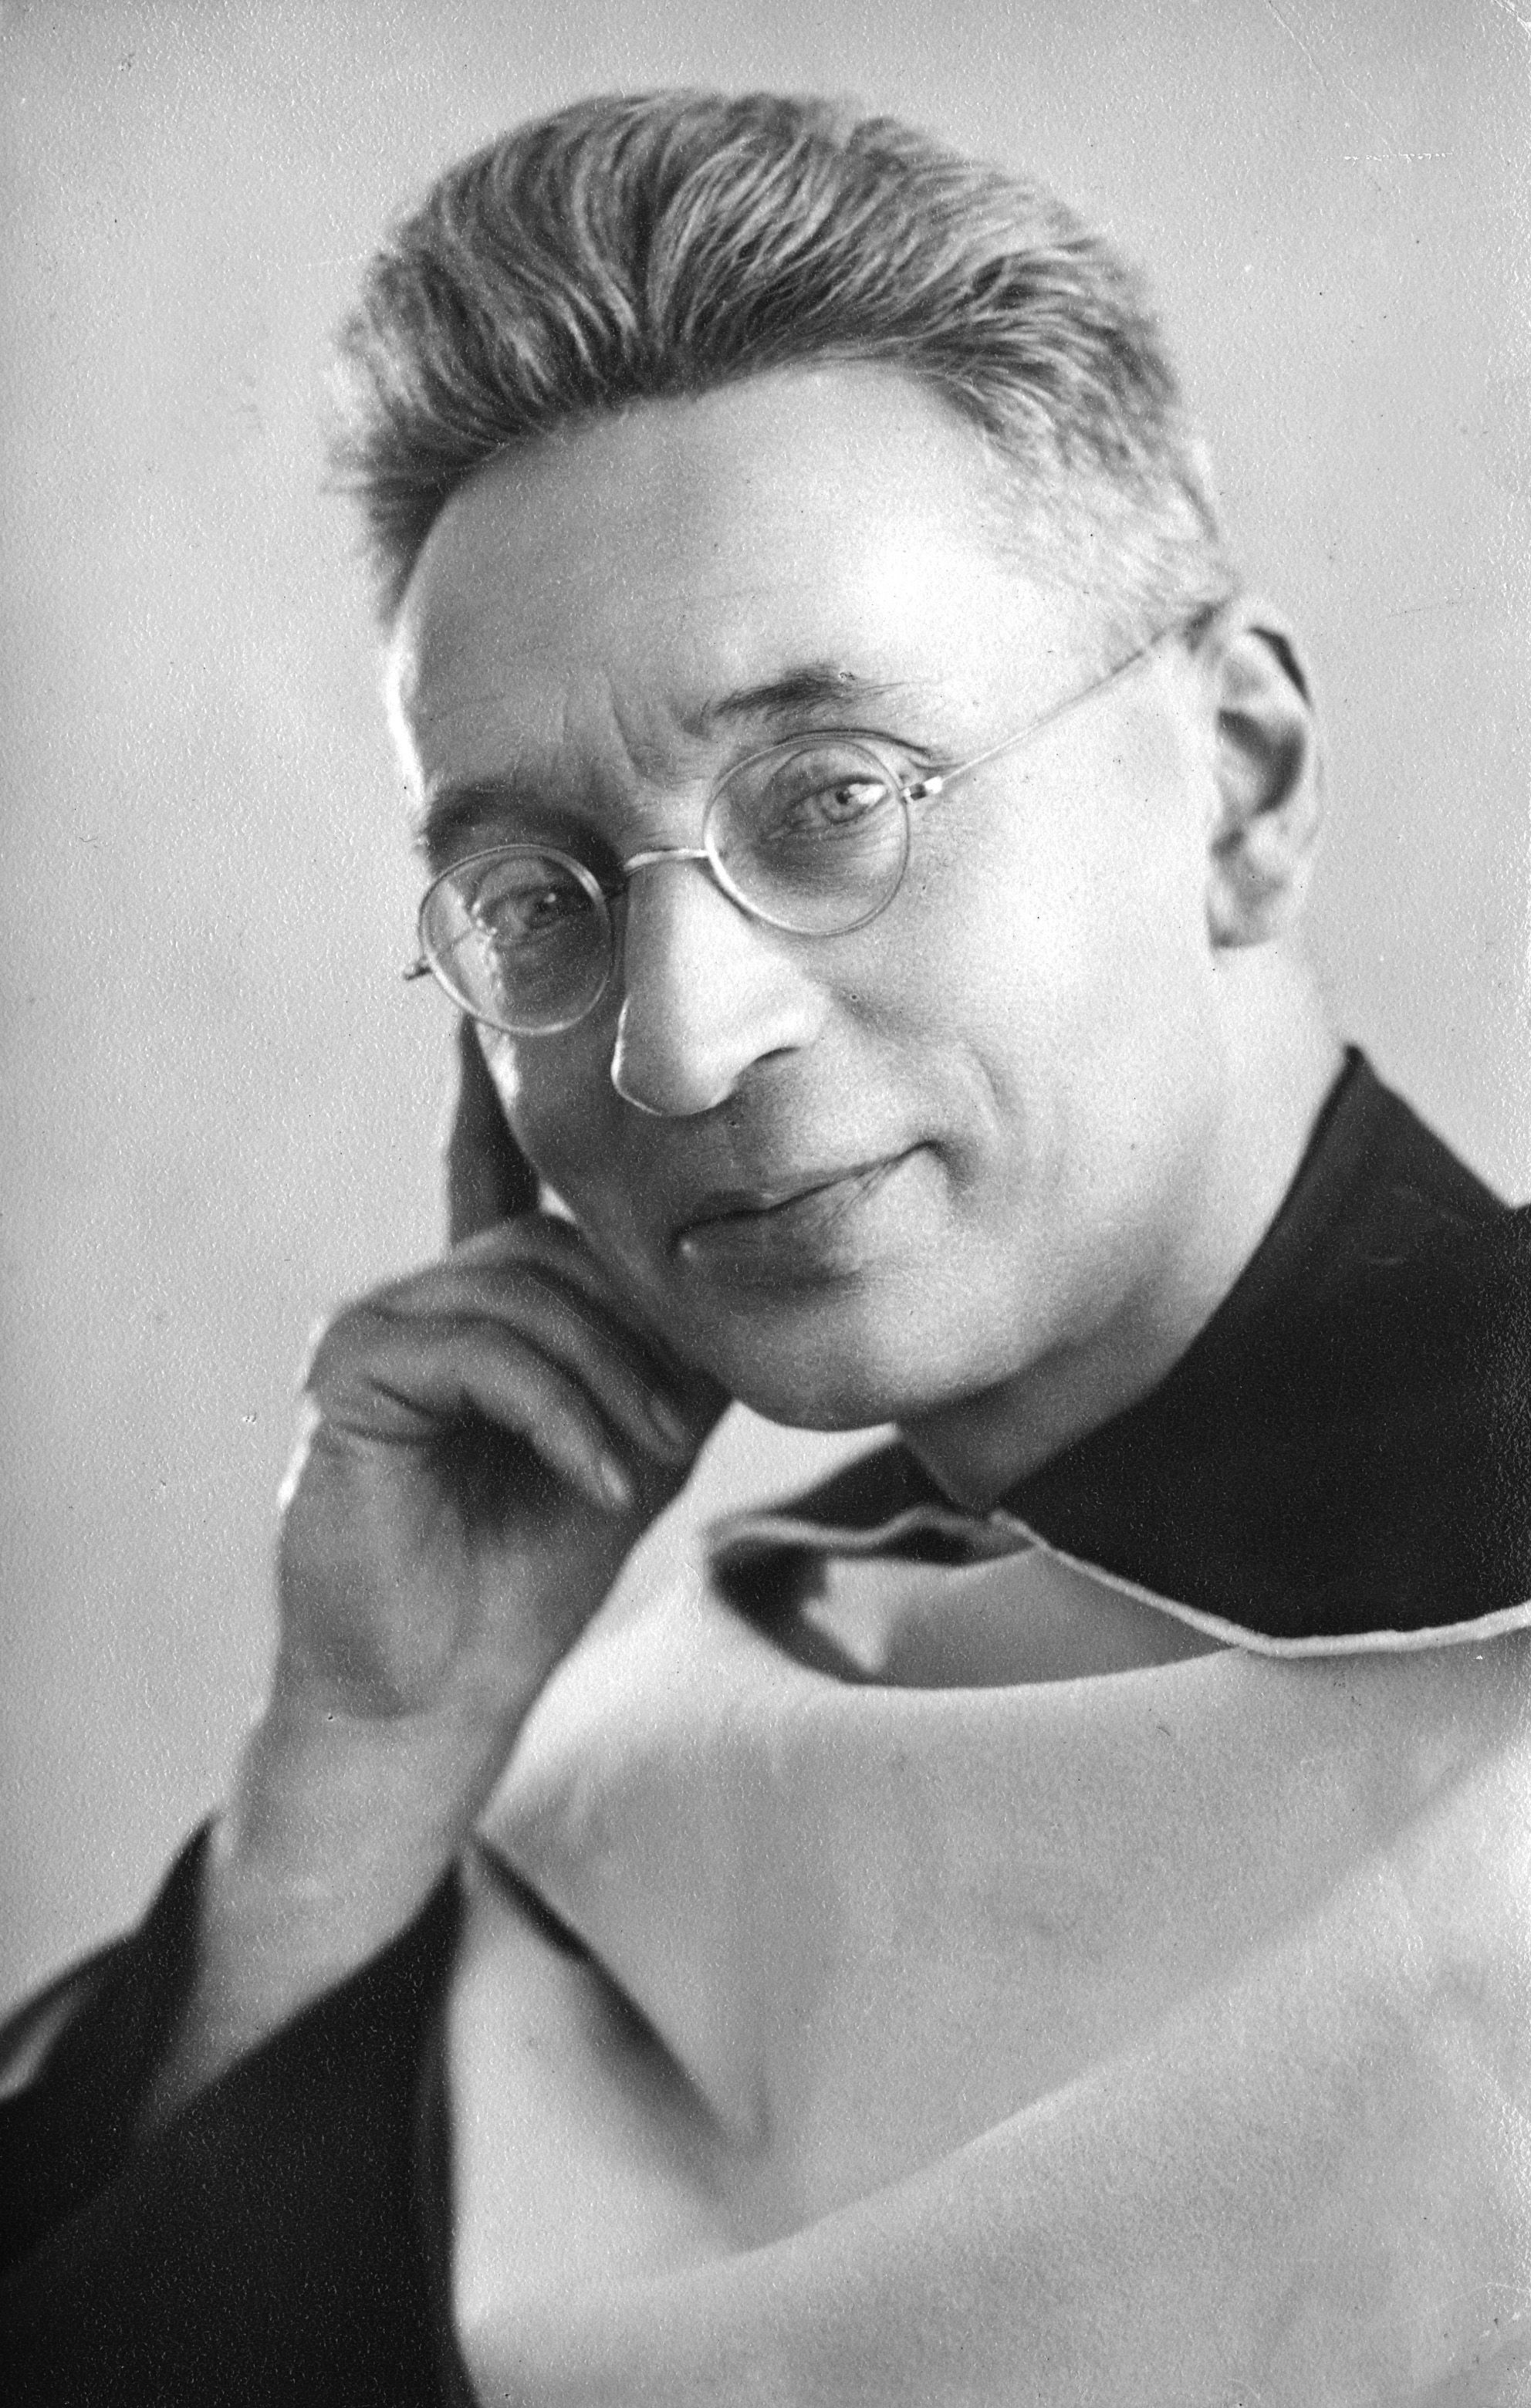 Prayer for the Canonization of Titus Brandsma - IntroLearn More